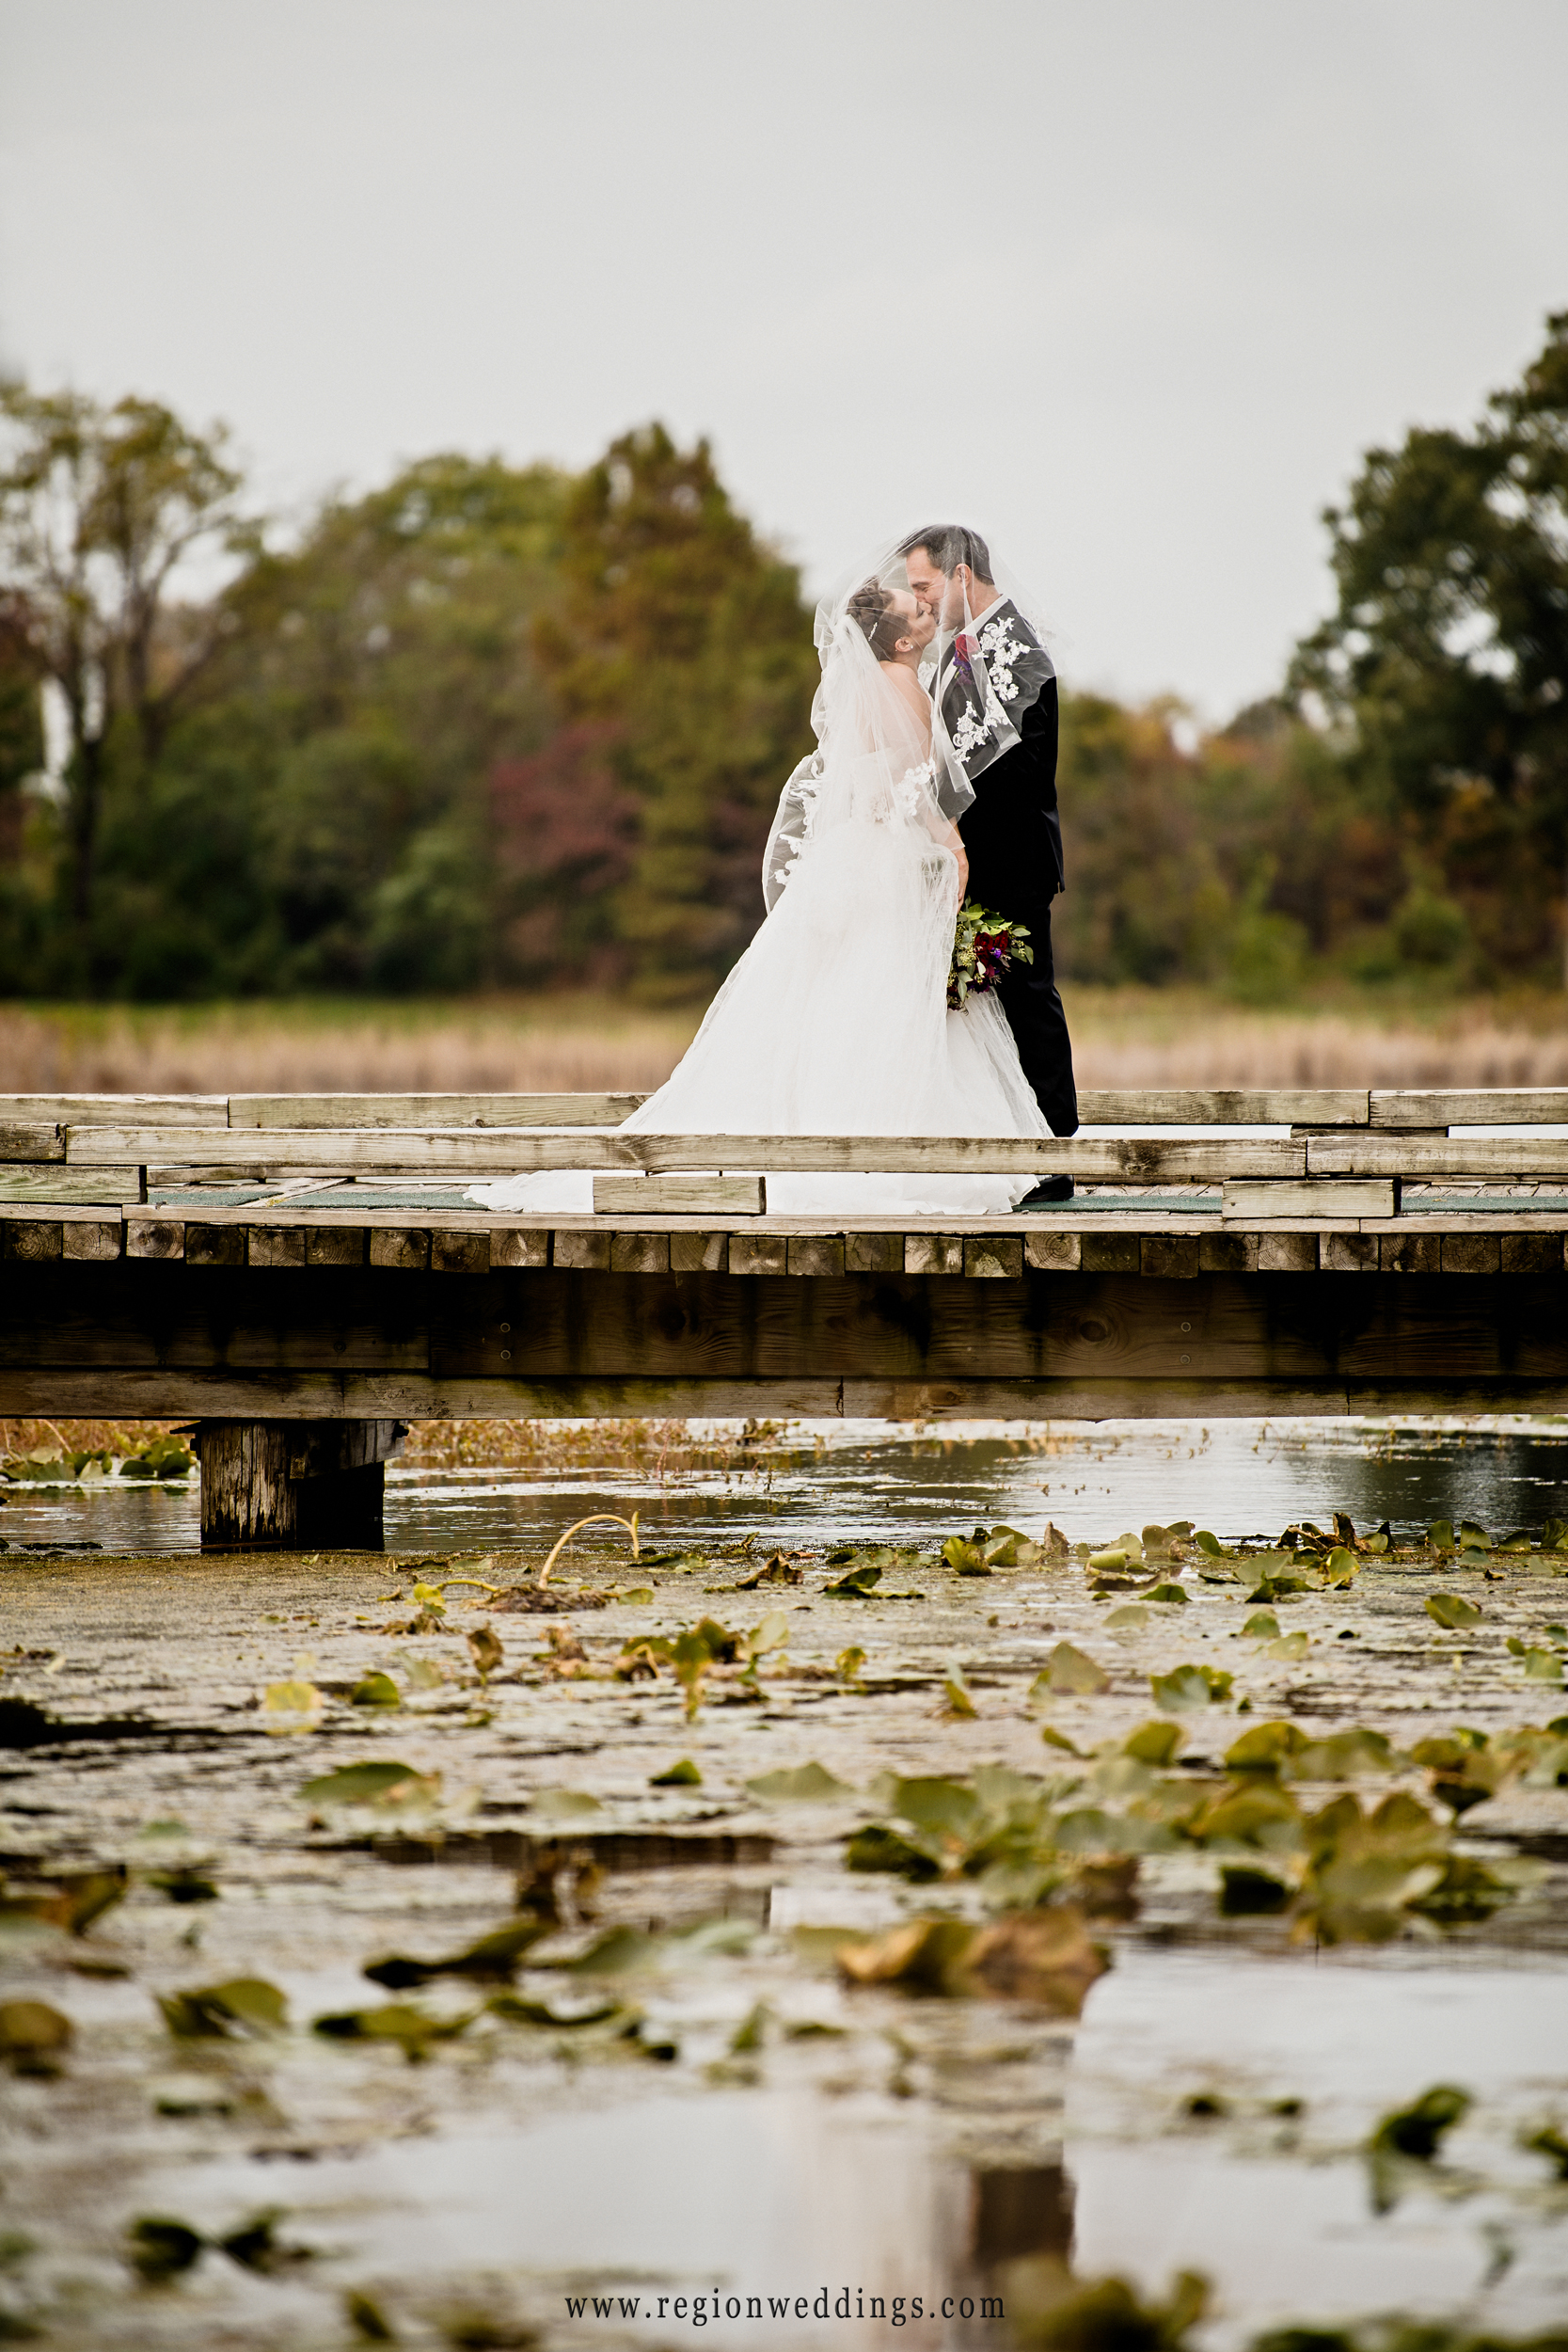 Under the veil kiss at Sand Creek Country Club in Chesterton, Indiana.